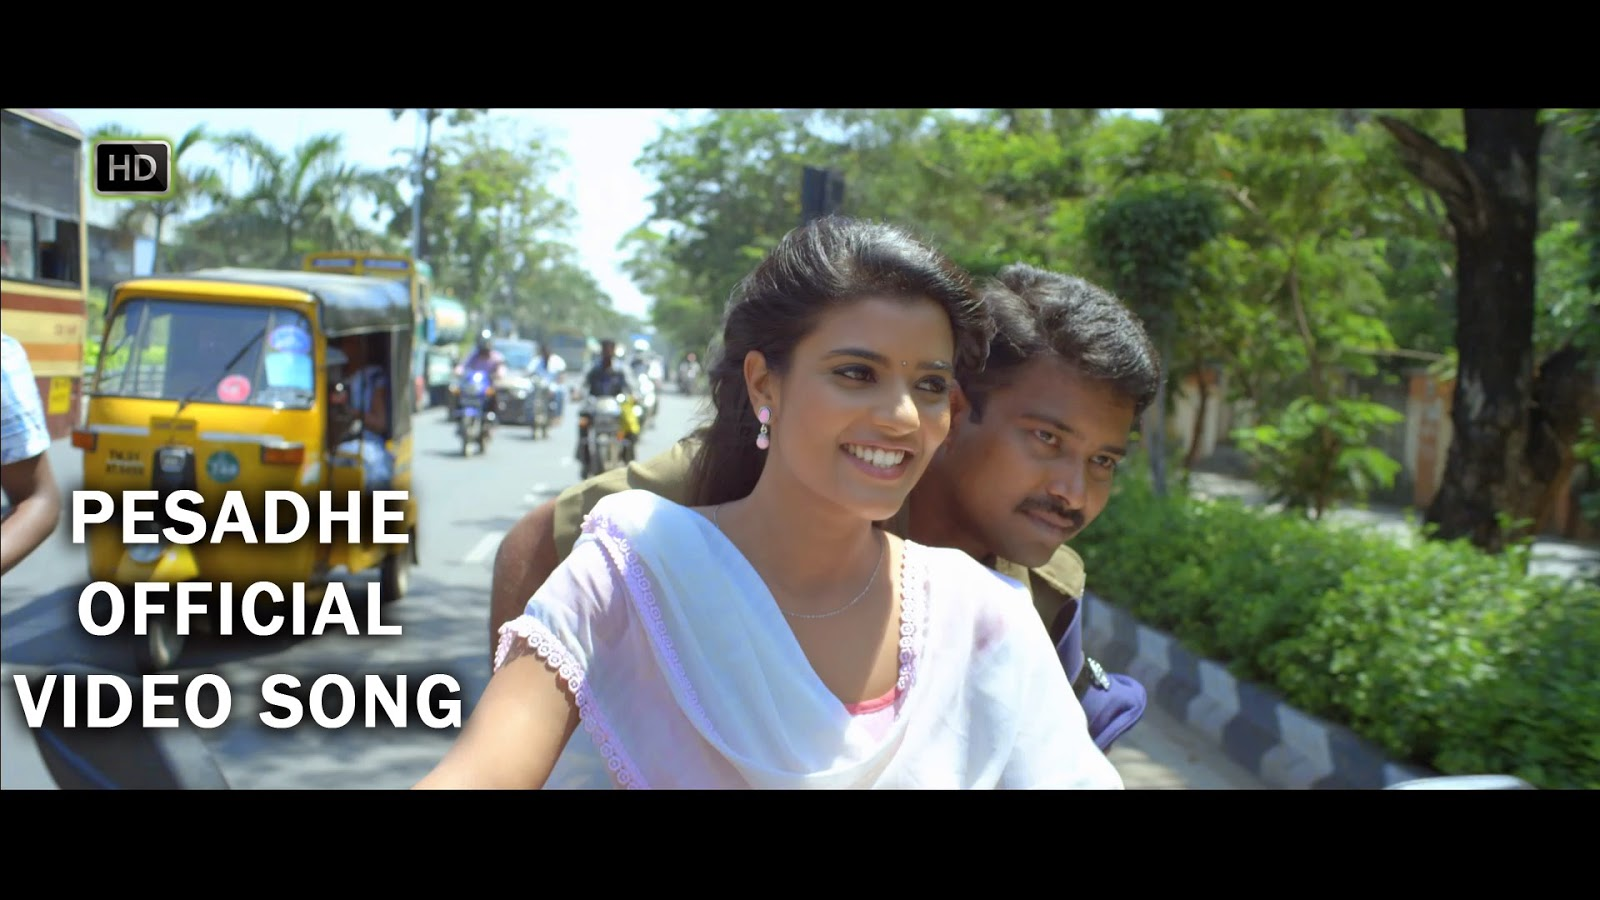 Thirudan Police Pesadhe Official Full Video Song | Dinesh | Iyshwarya | Yuvan Shankar Raja